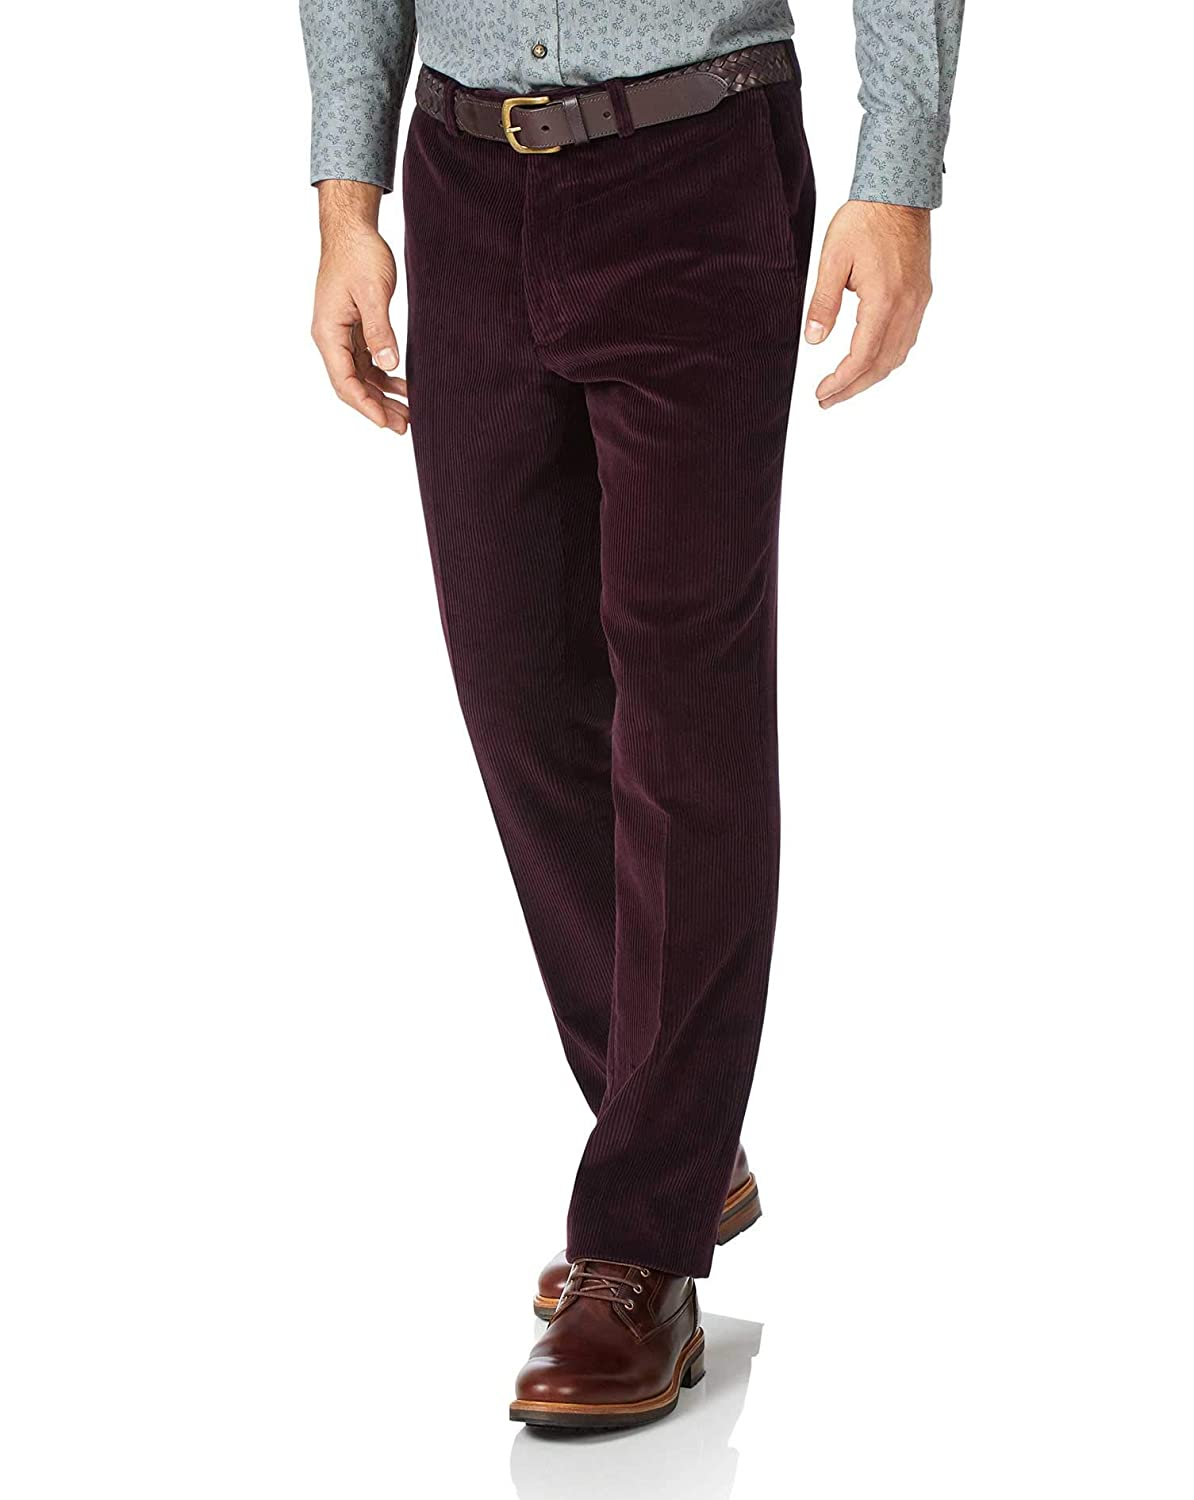 e4d283f5 Wine Slim Fit Jumbo Corduroy Trousers by Charles Tyrwhitt: Amazon.co.uk:  Clothing